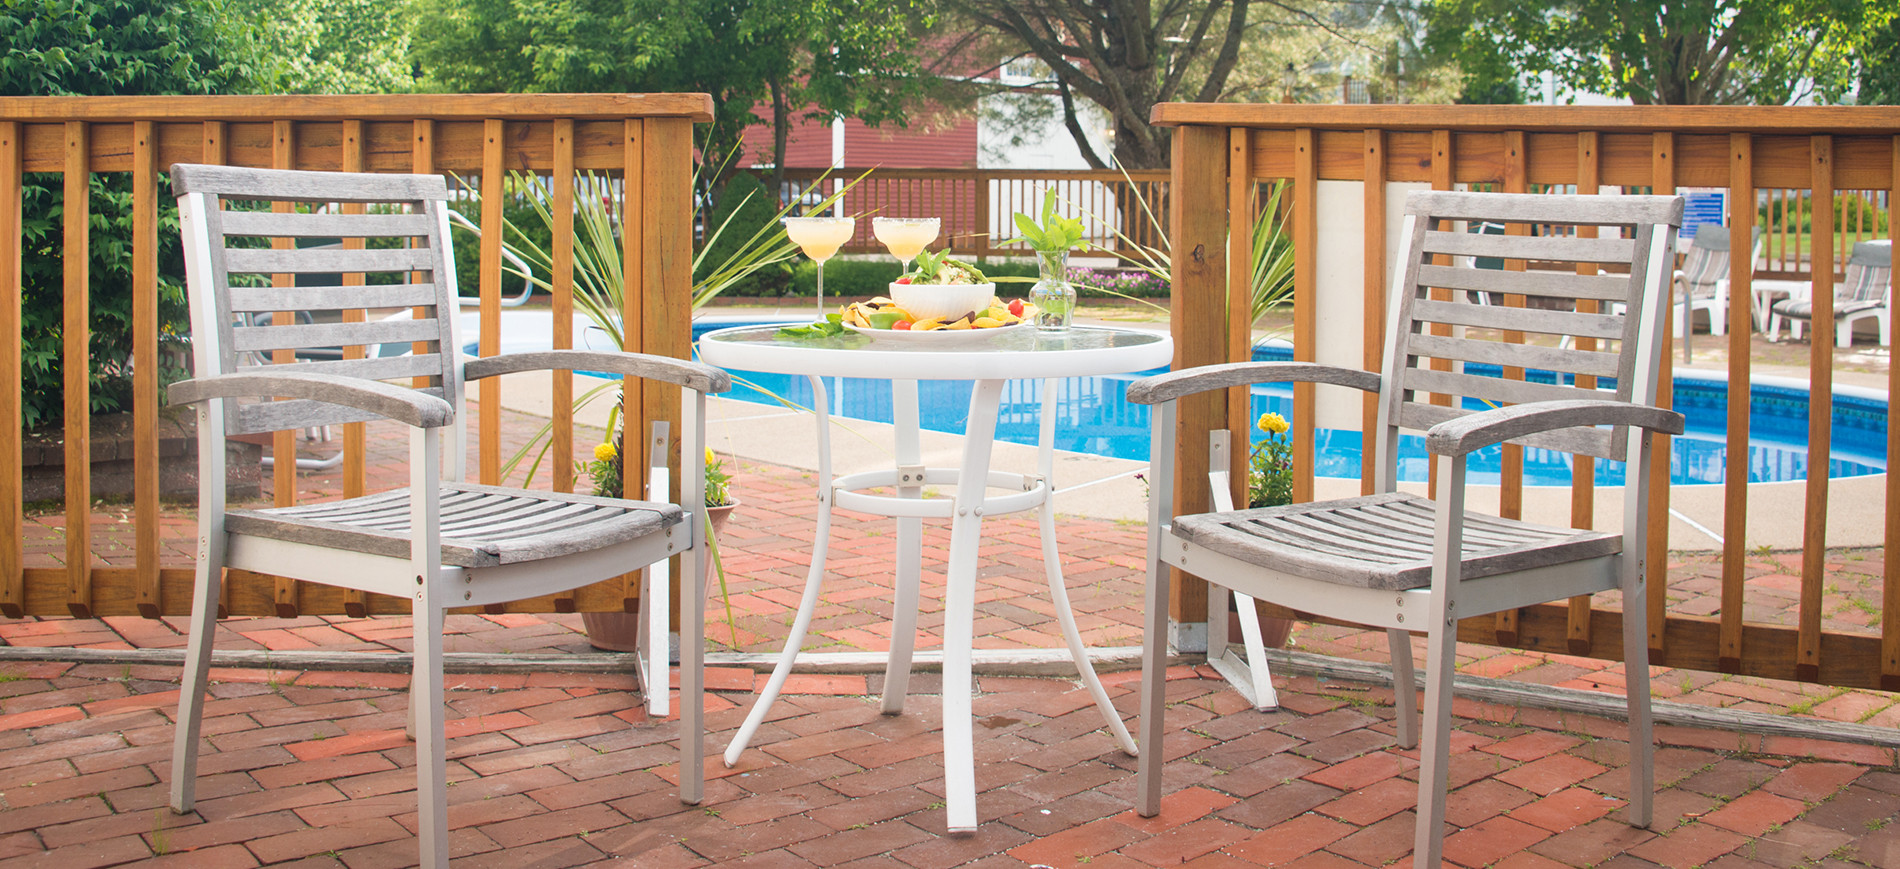 patio with two chairs & table with drinks, fence and pool behind